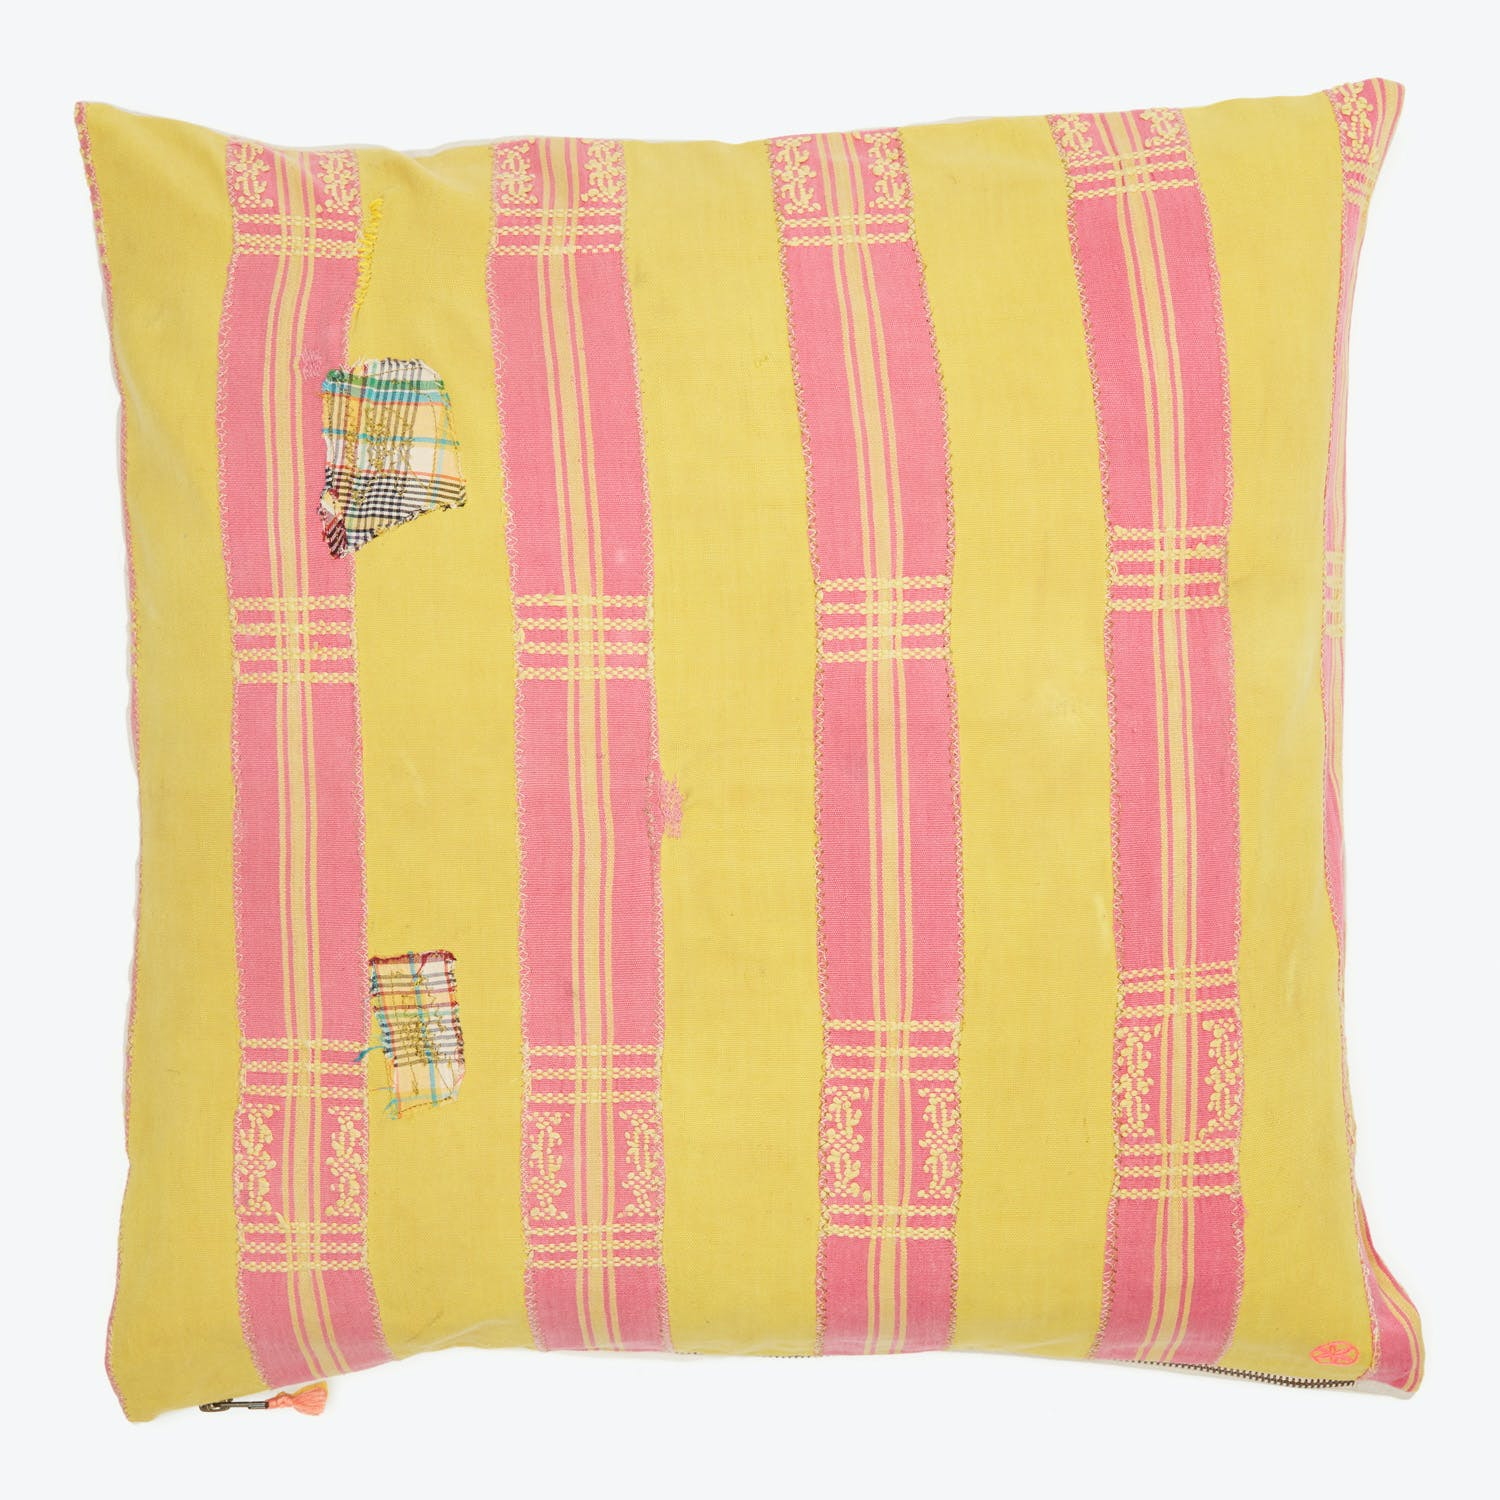 abcDNA Mfumi Pillow Yellow Patchwork